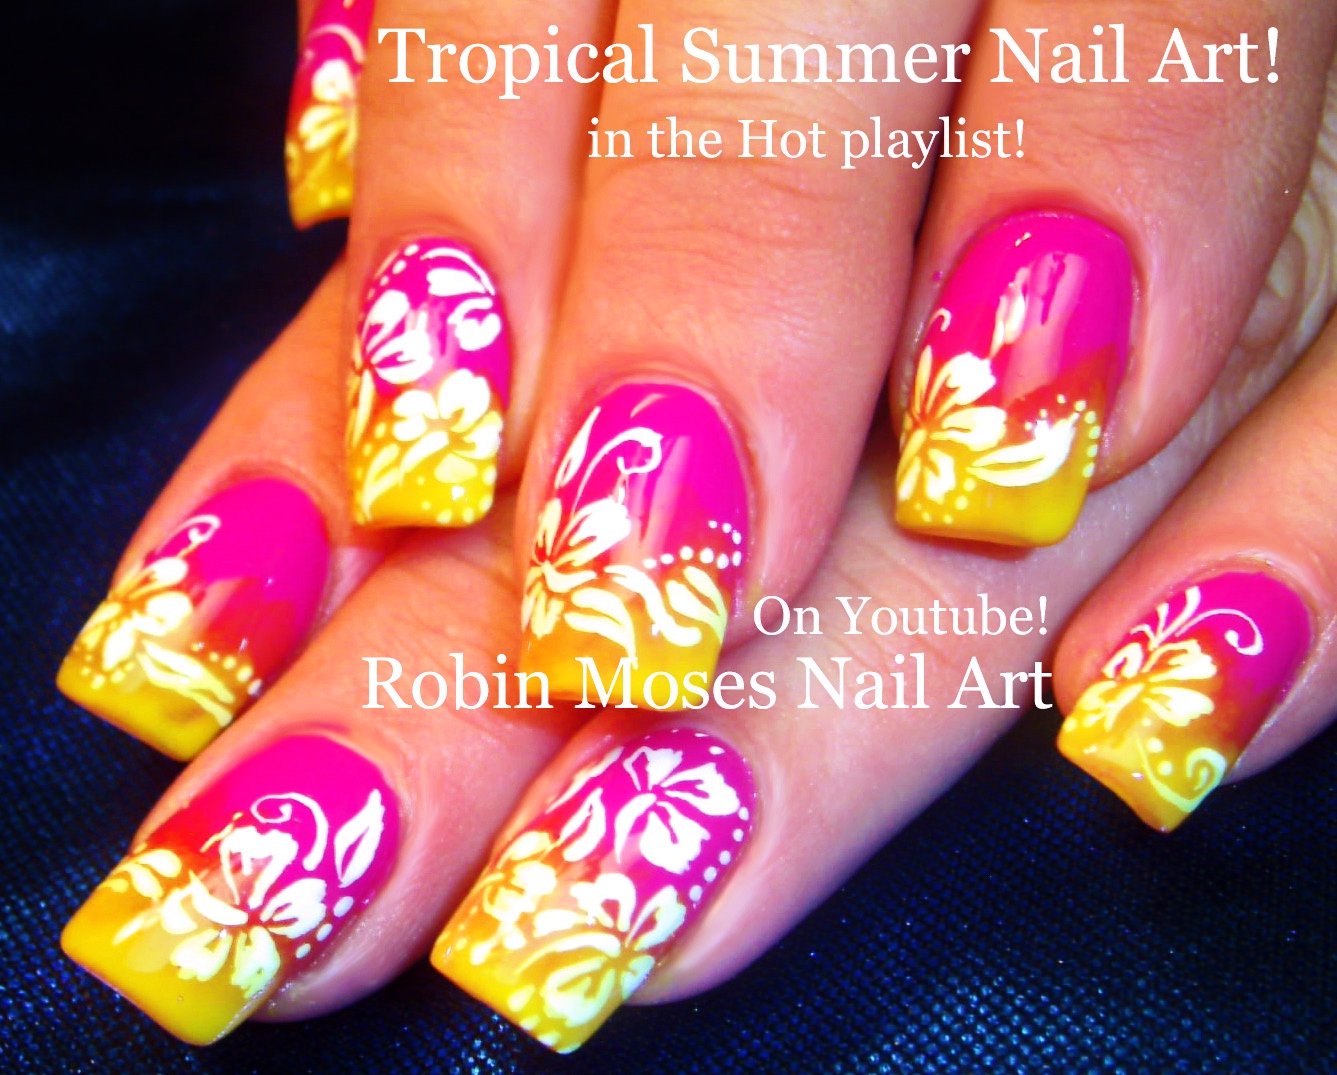 Please SHOUT OUT, like, comment and SUBSCRIBE to those who inspire you and  keep our Nail Art community fun and full of NEW ideas! - Nail Art By Robin Moses: DIY Hand Painted Neon Flower Nail Art